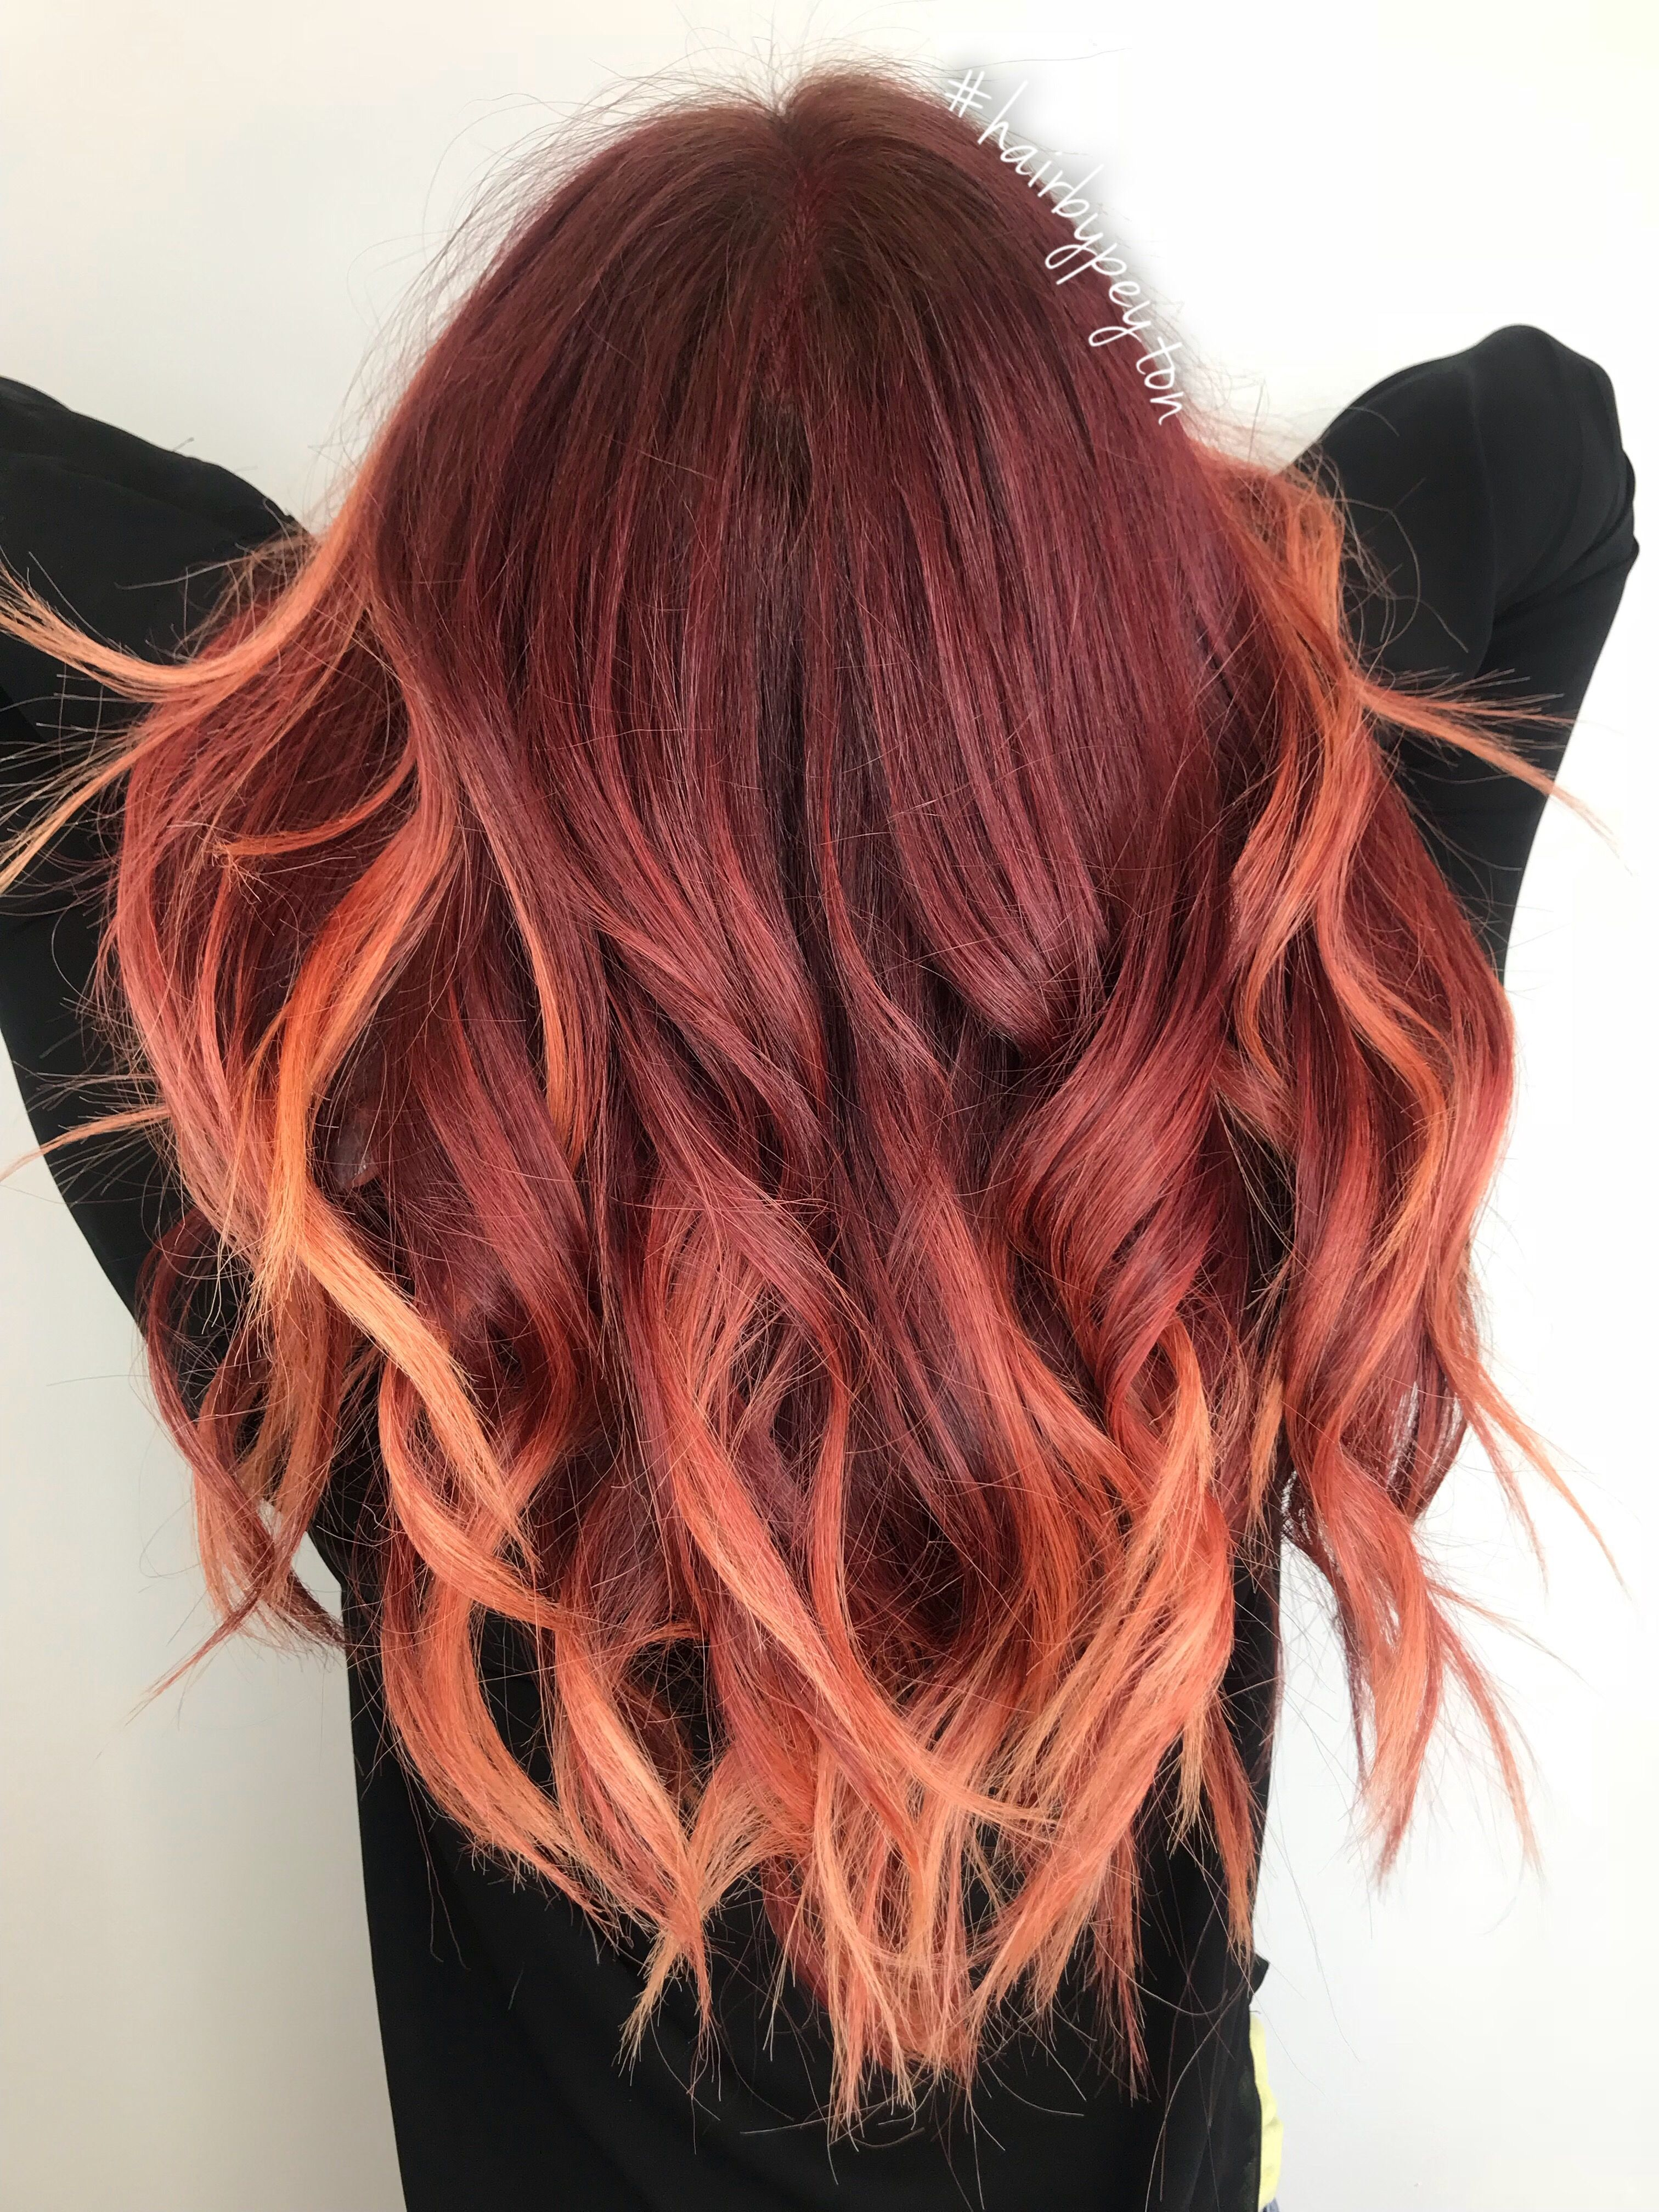 Sunburst Red To Copper Hair Balayage Red Balayage Hair Balayage Hair Balayage